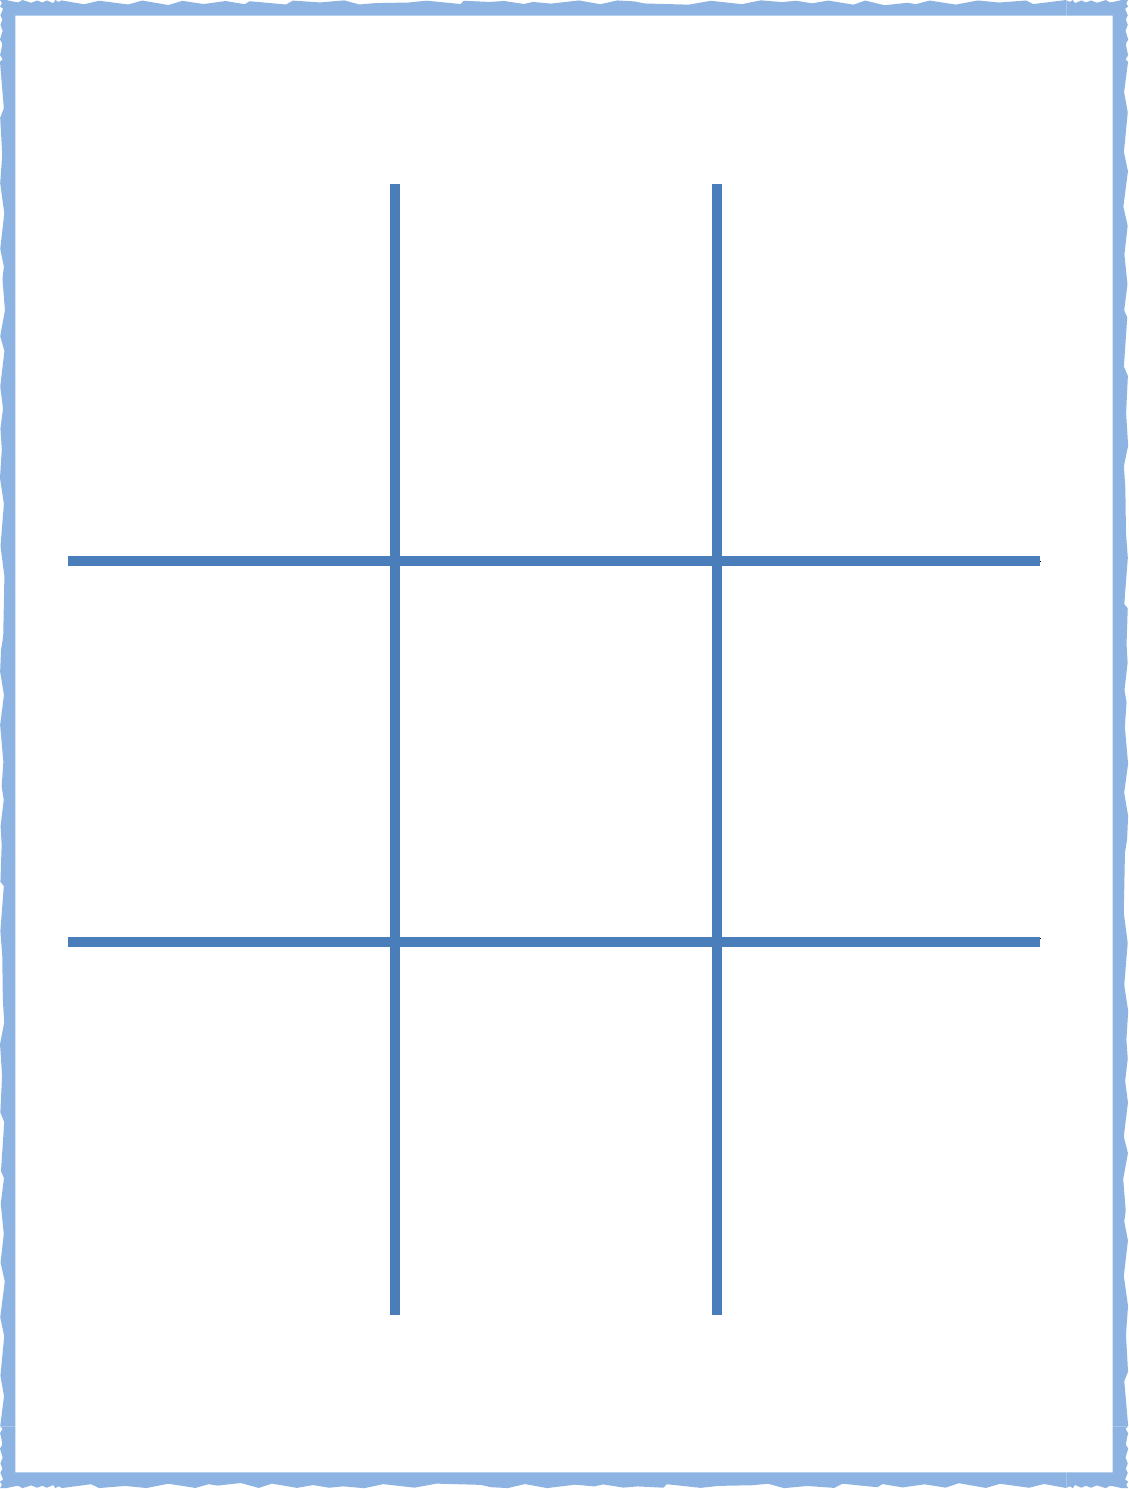 picture regarding Tic Tac Toe Board Printable named Down load Tic Tac Toe Activity Board for Cost-free - TidyTemplates